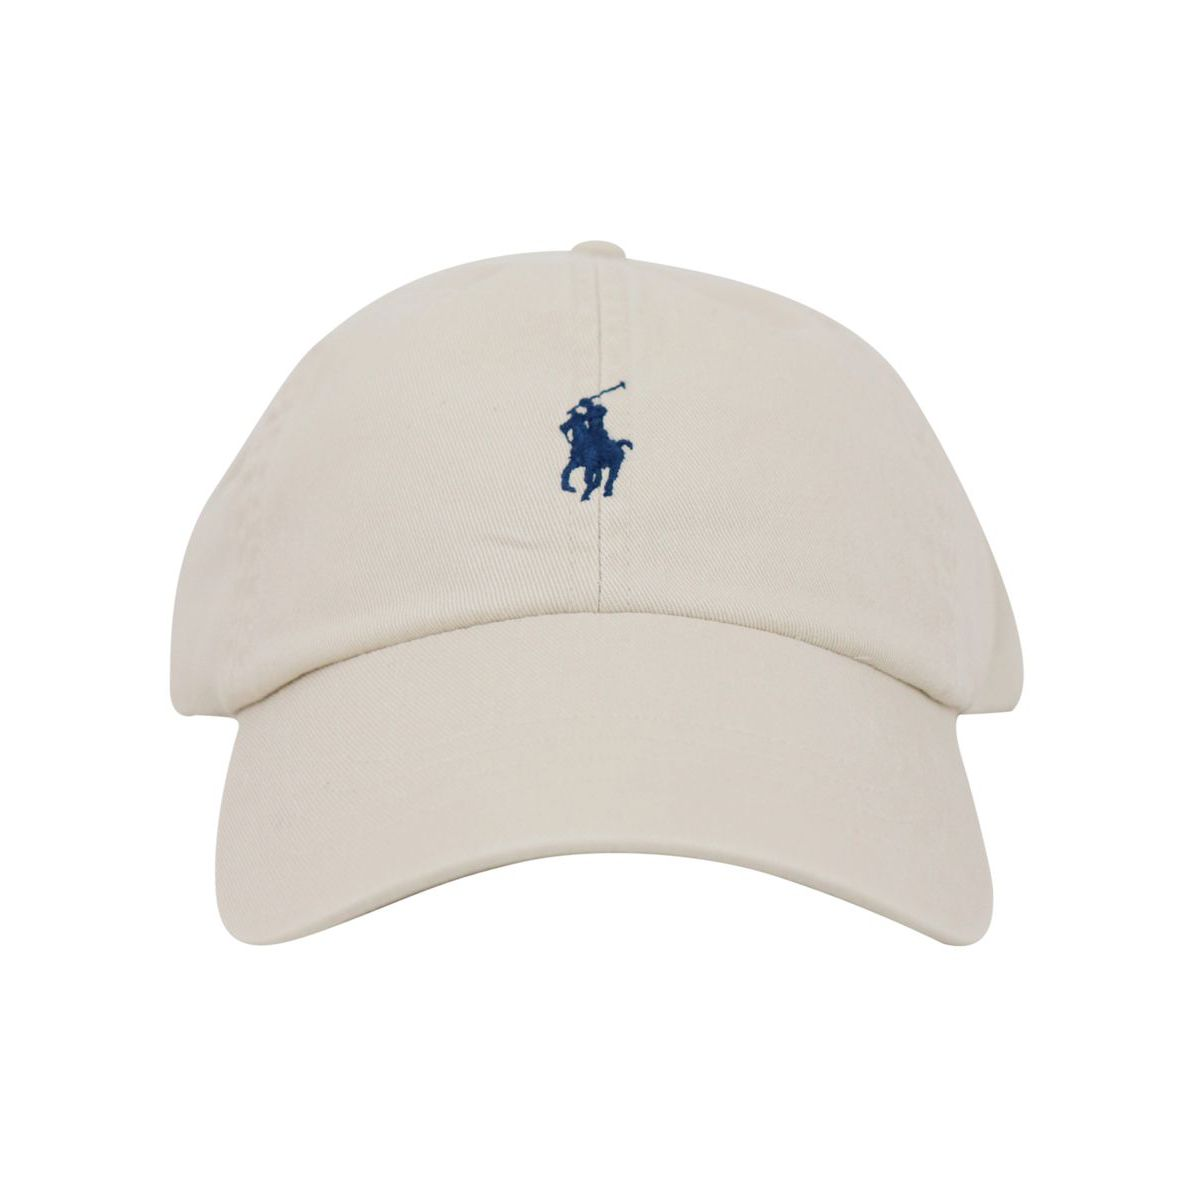 Cotton cap with visor and contrasting logo embroidery Beige Polo Ralph Lauren